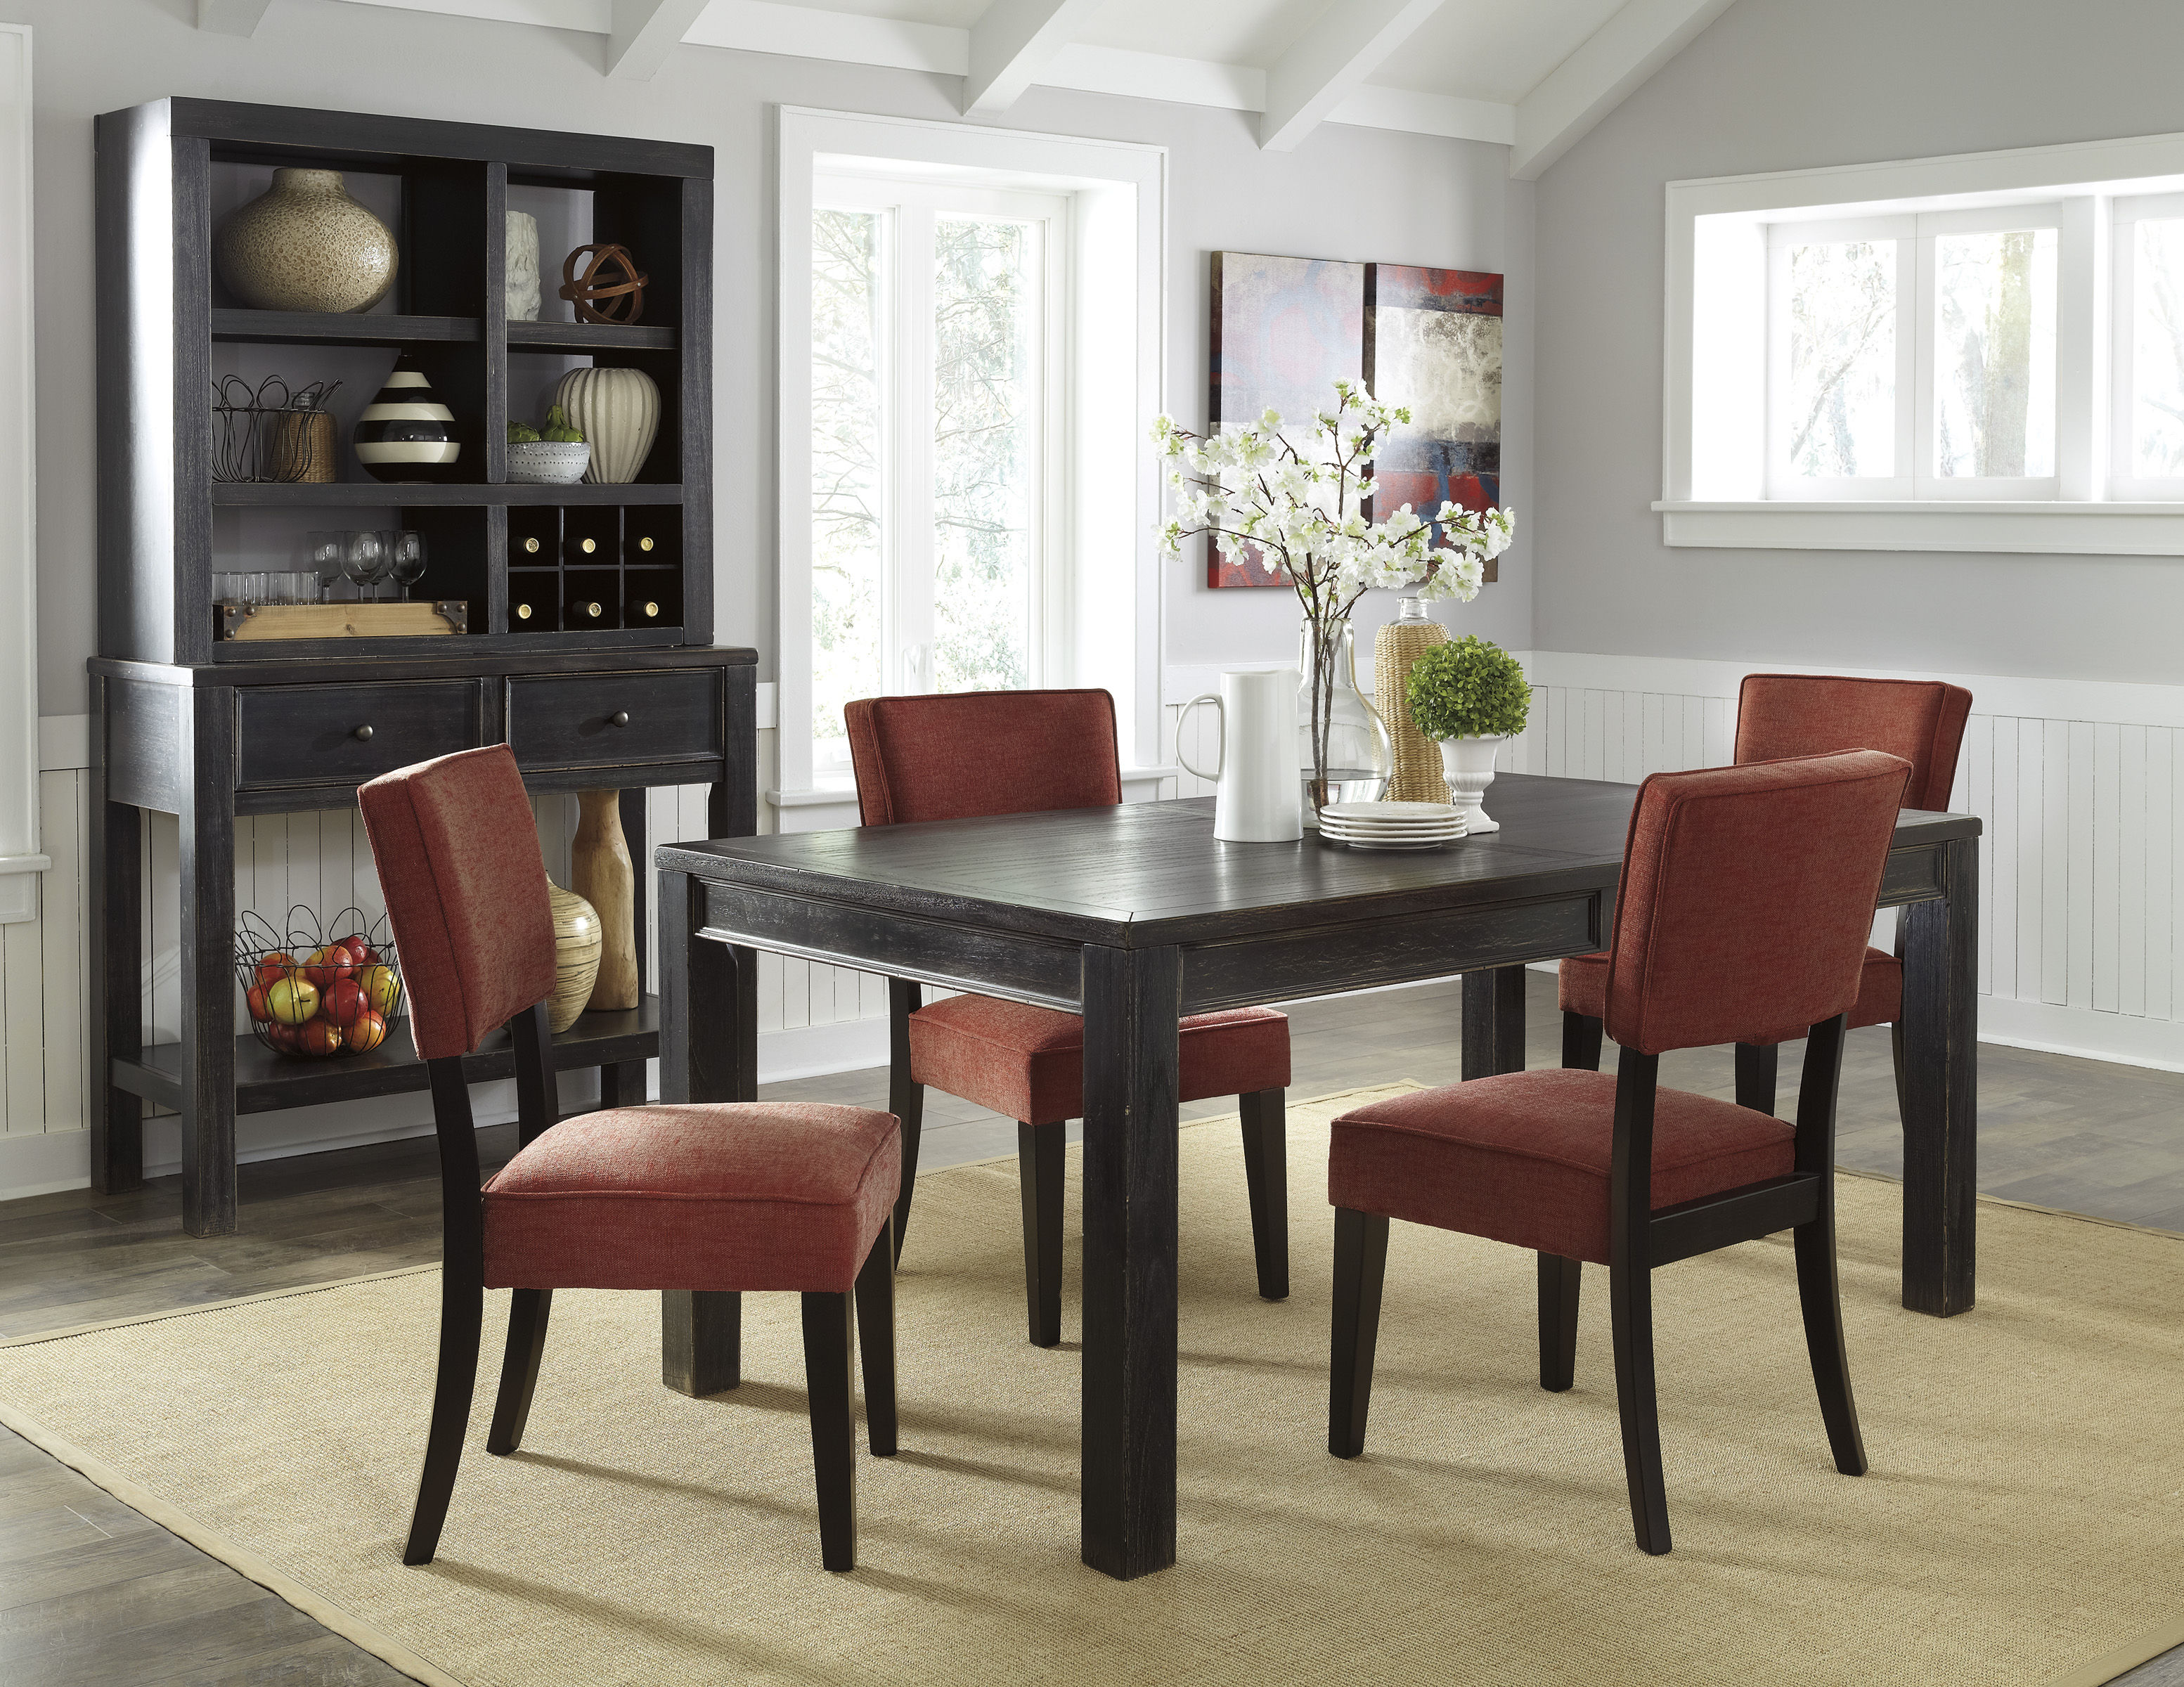 Gavelston Urbanology Black Brick Wood 5pc Dining Room Set